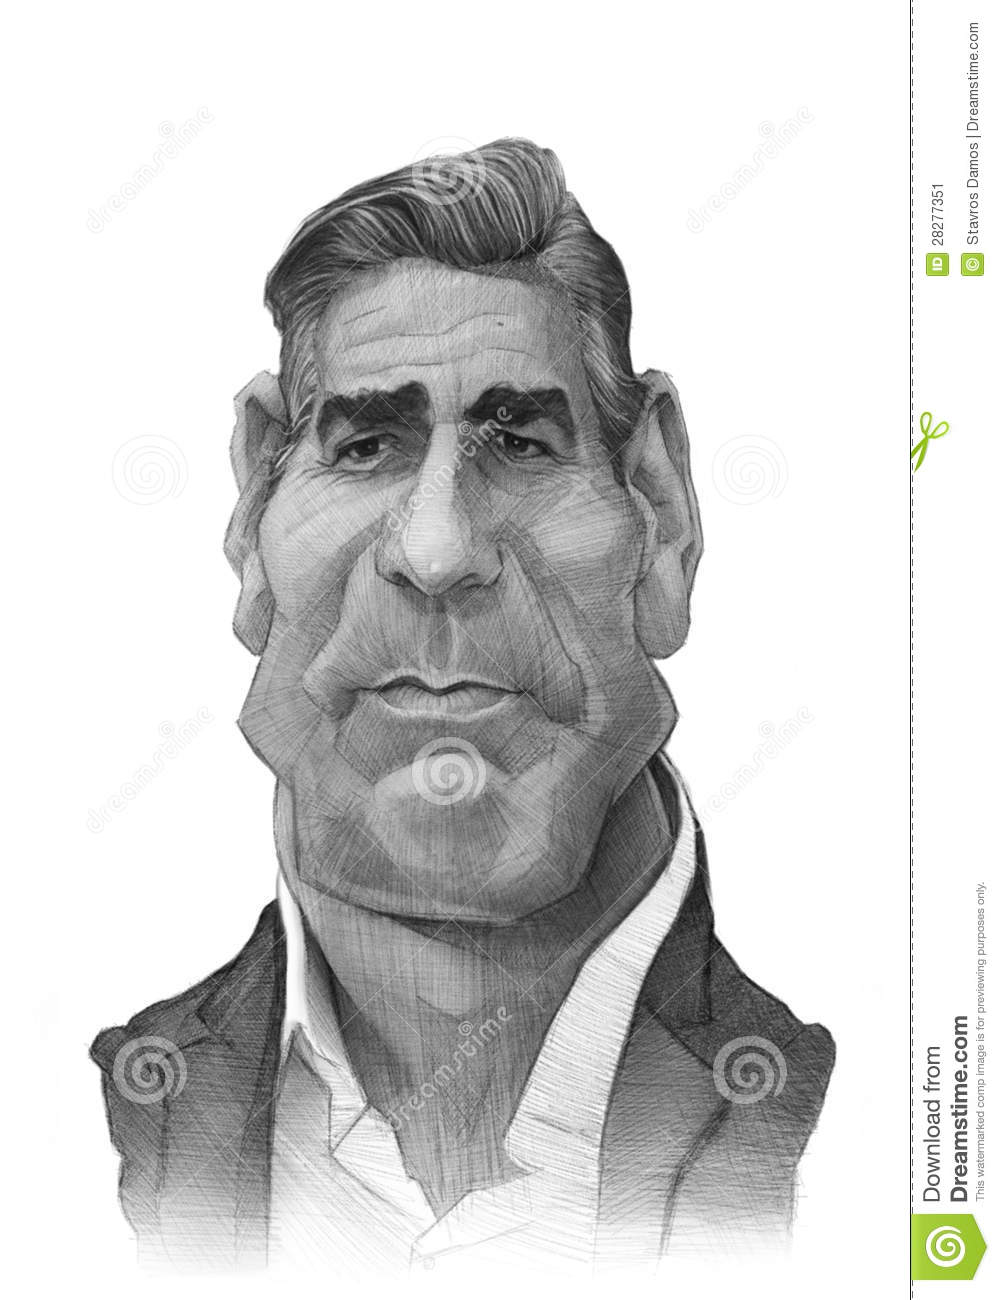 George Clooney Caricature Sketch